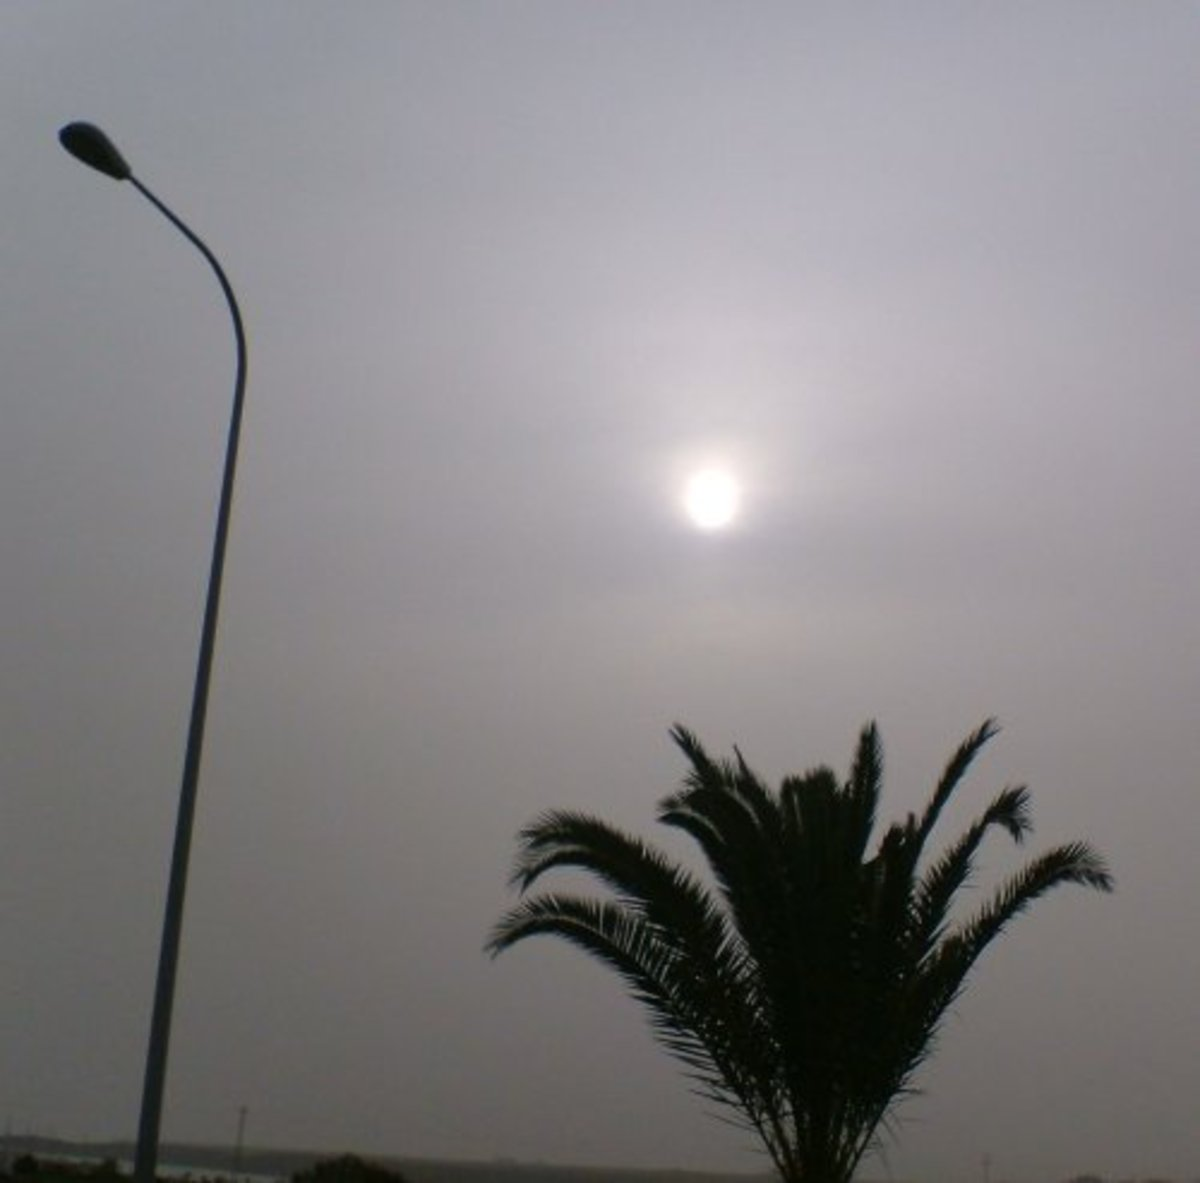 Sun in early afternoon